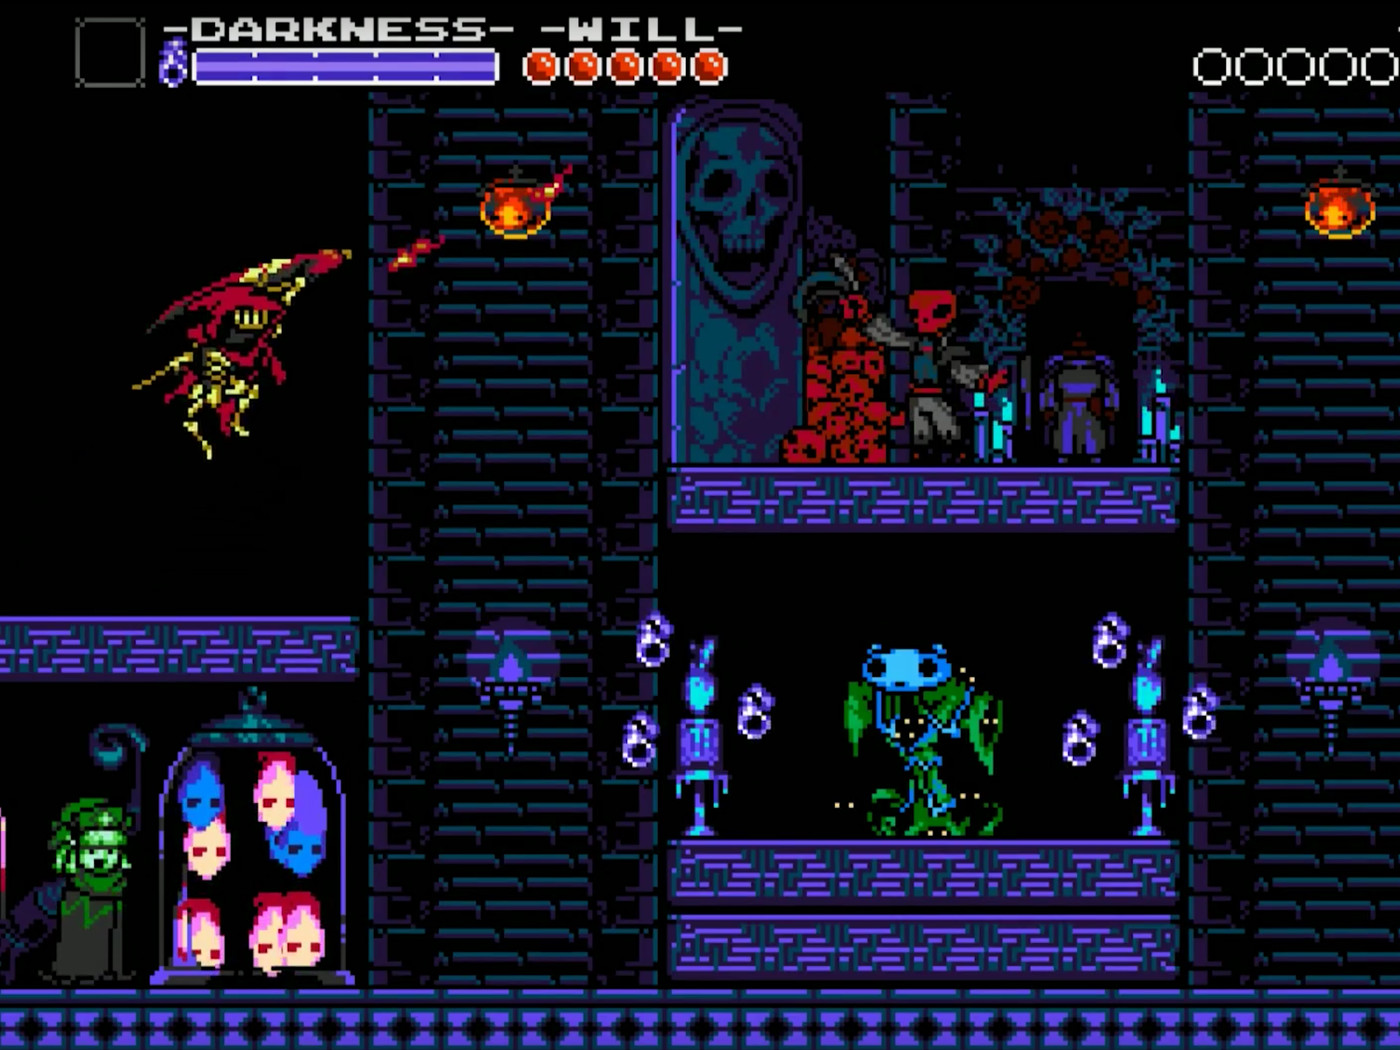 Brilliant Nes Style Action Game Shovel Knight Is Getting A Prequel